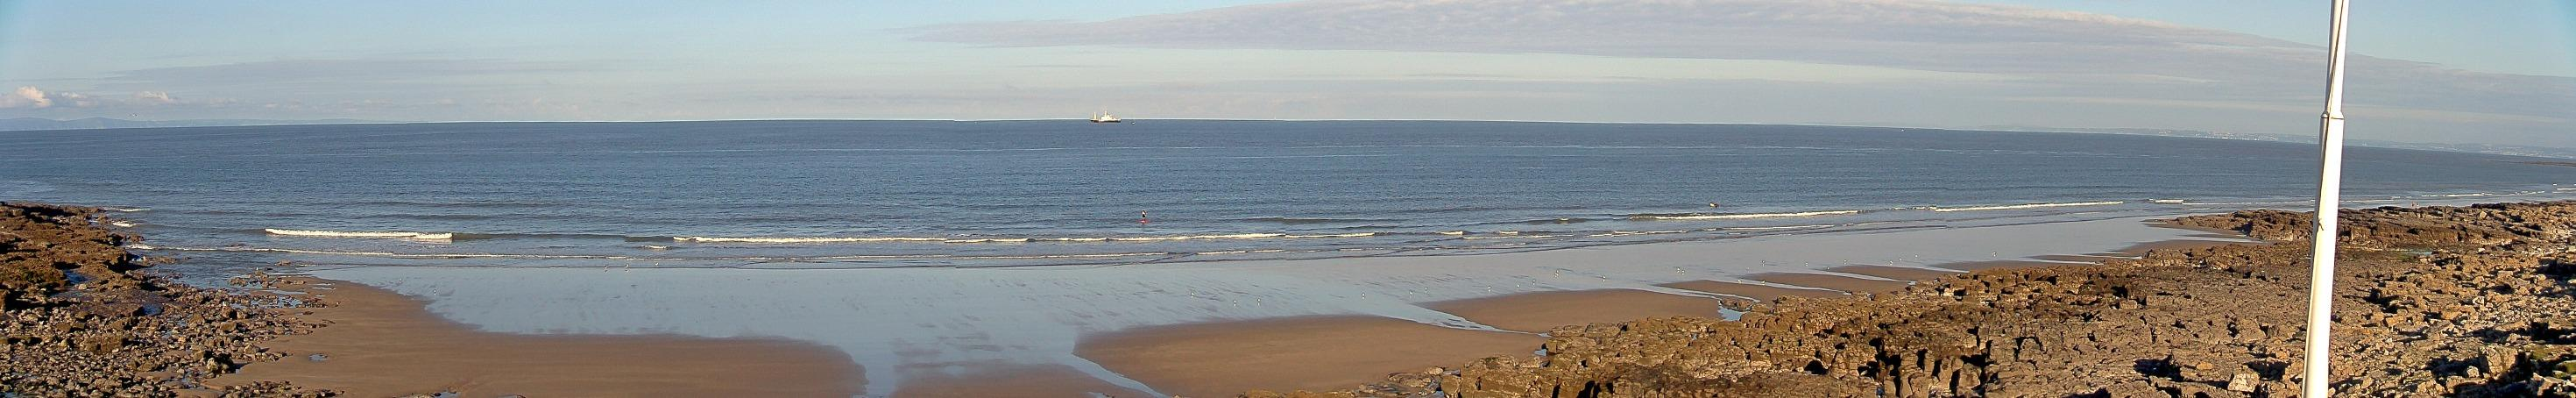 Latest webcam still for Porthcawl - Rest Bay